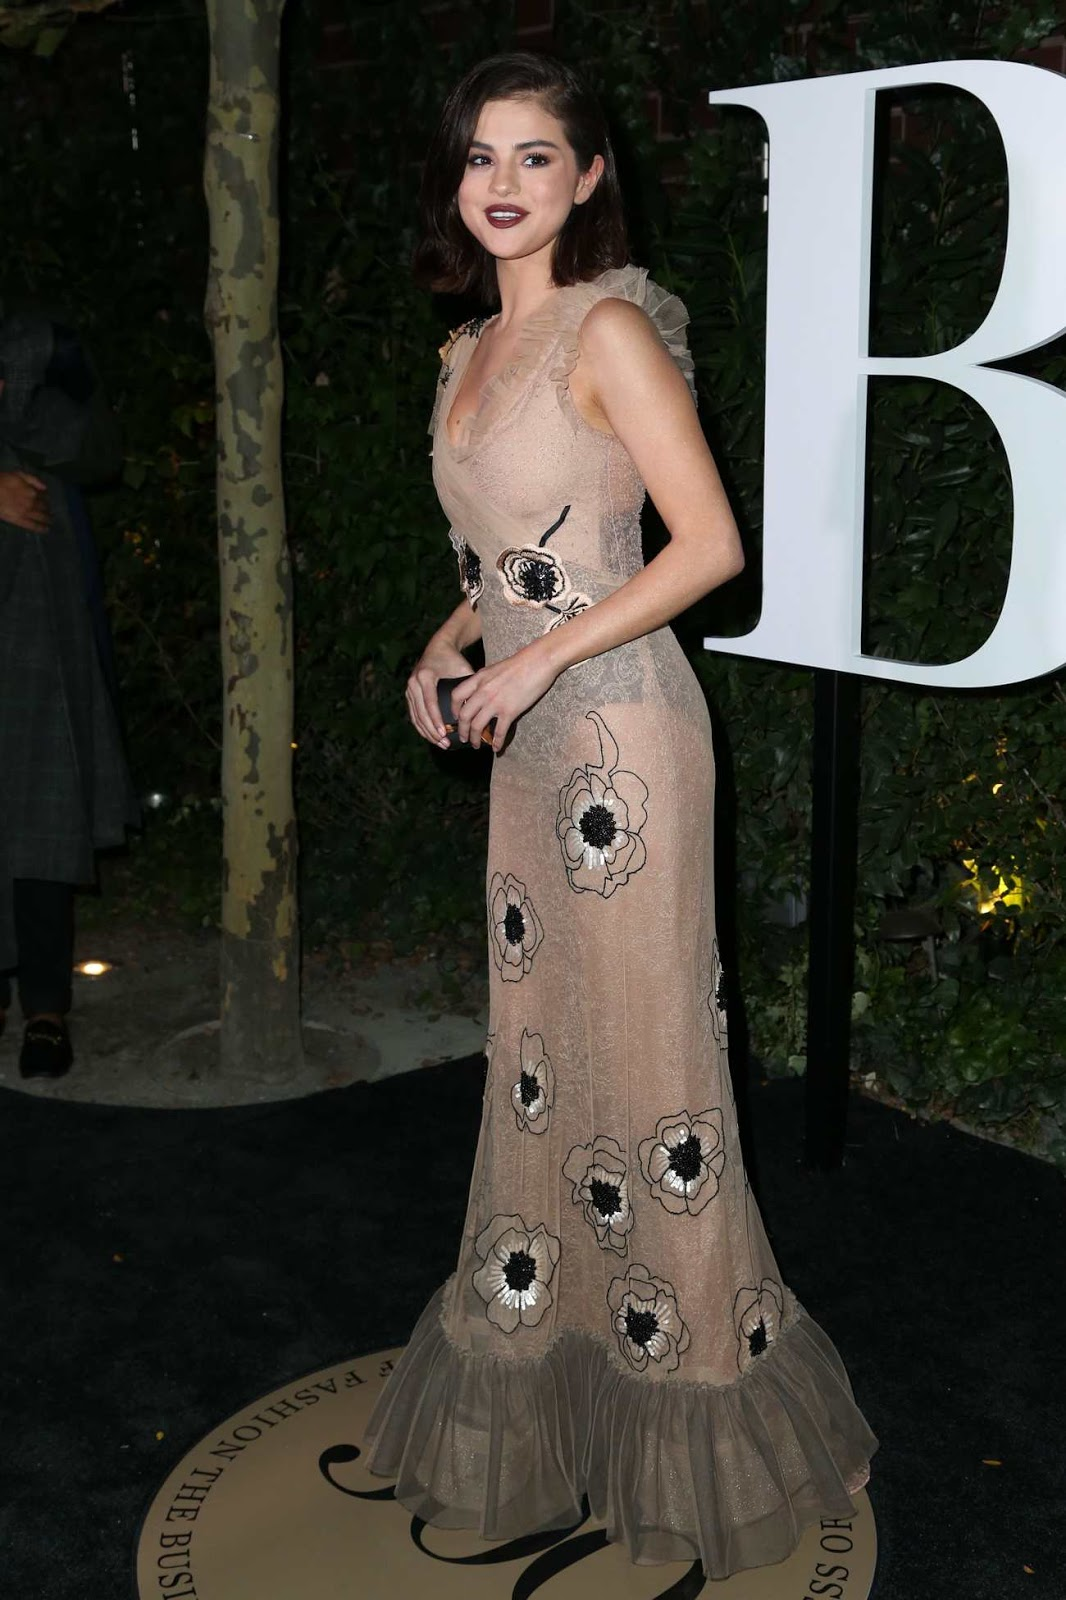 Selena Gomez wears daring sheer gown for the Business of Fashion 500 Gala